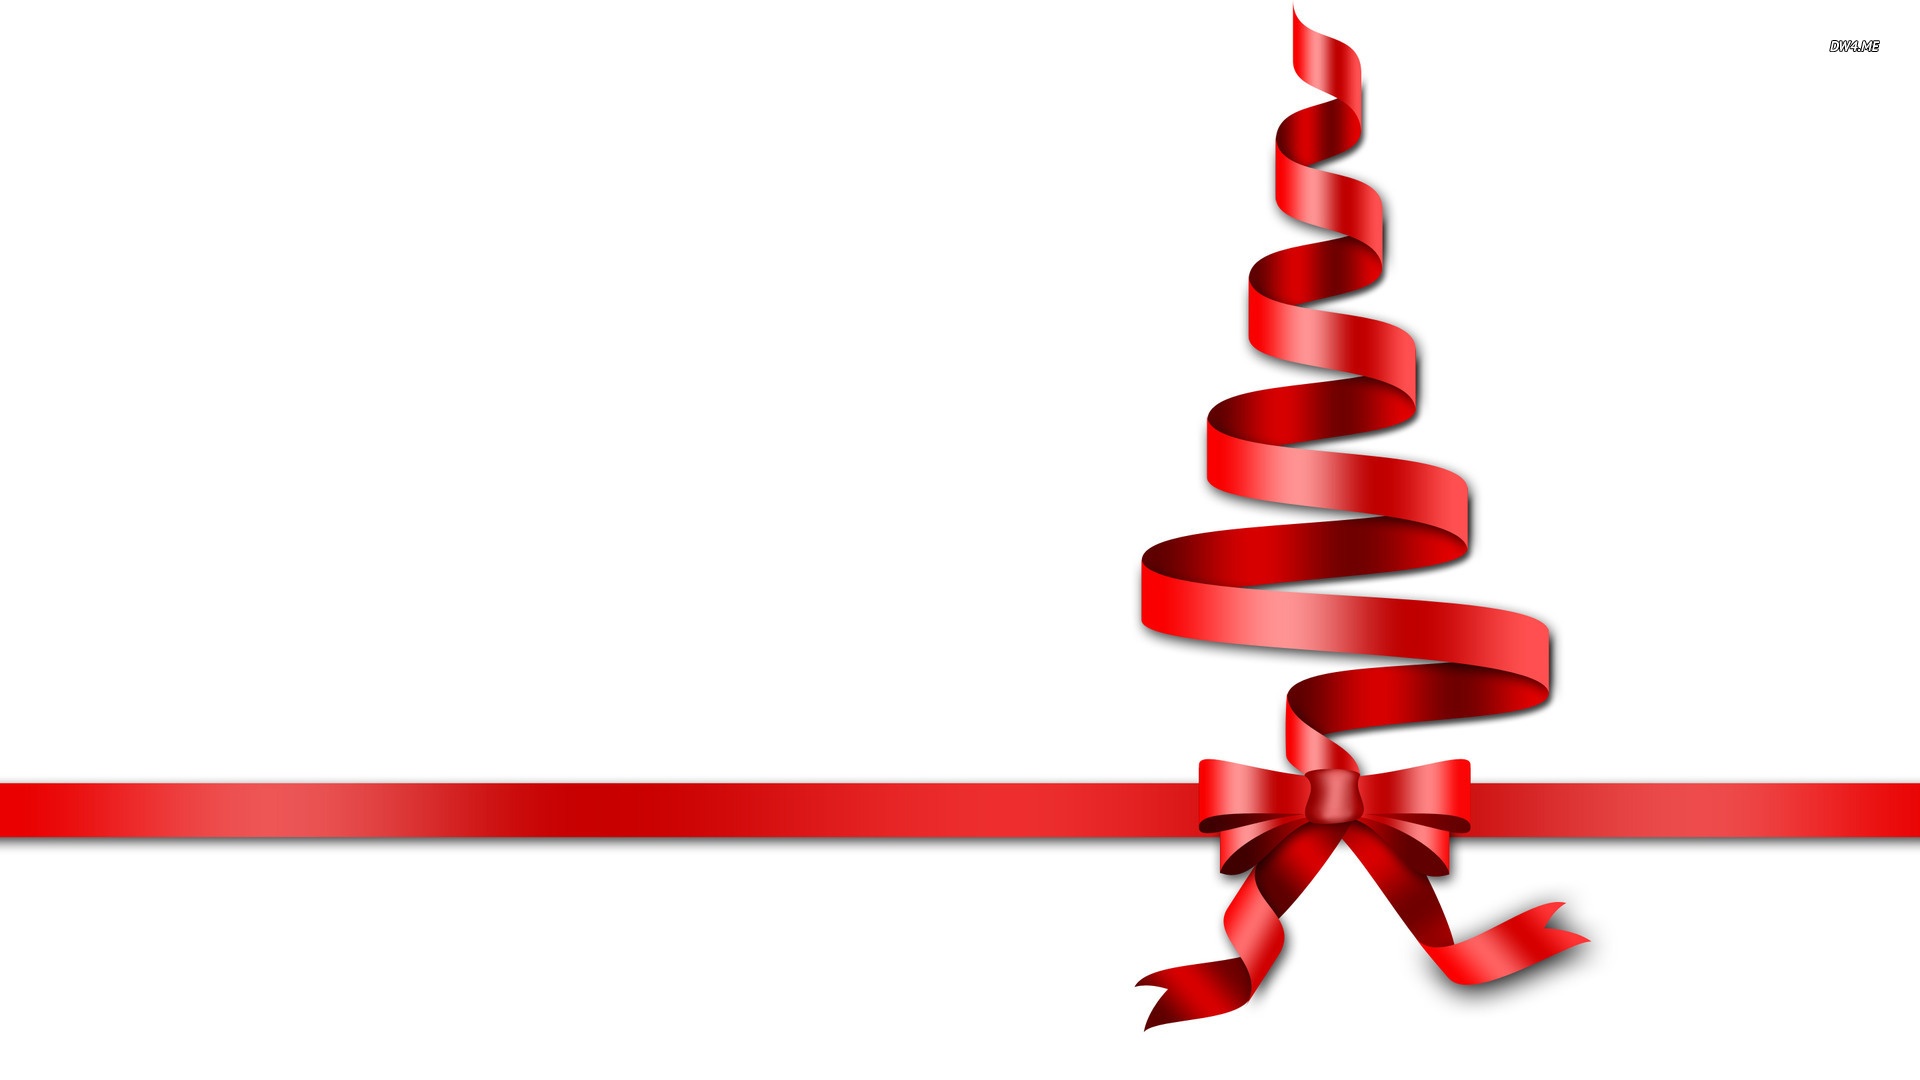 http://www.marvelslane.lewisham.sch.uk/mlps/wp-content/uploads/2015/11/1969-ribbon-christmas-tree-1920x1080-holiday-wallpaper.jpg